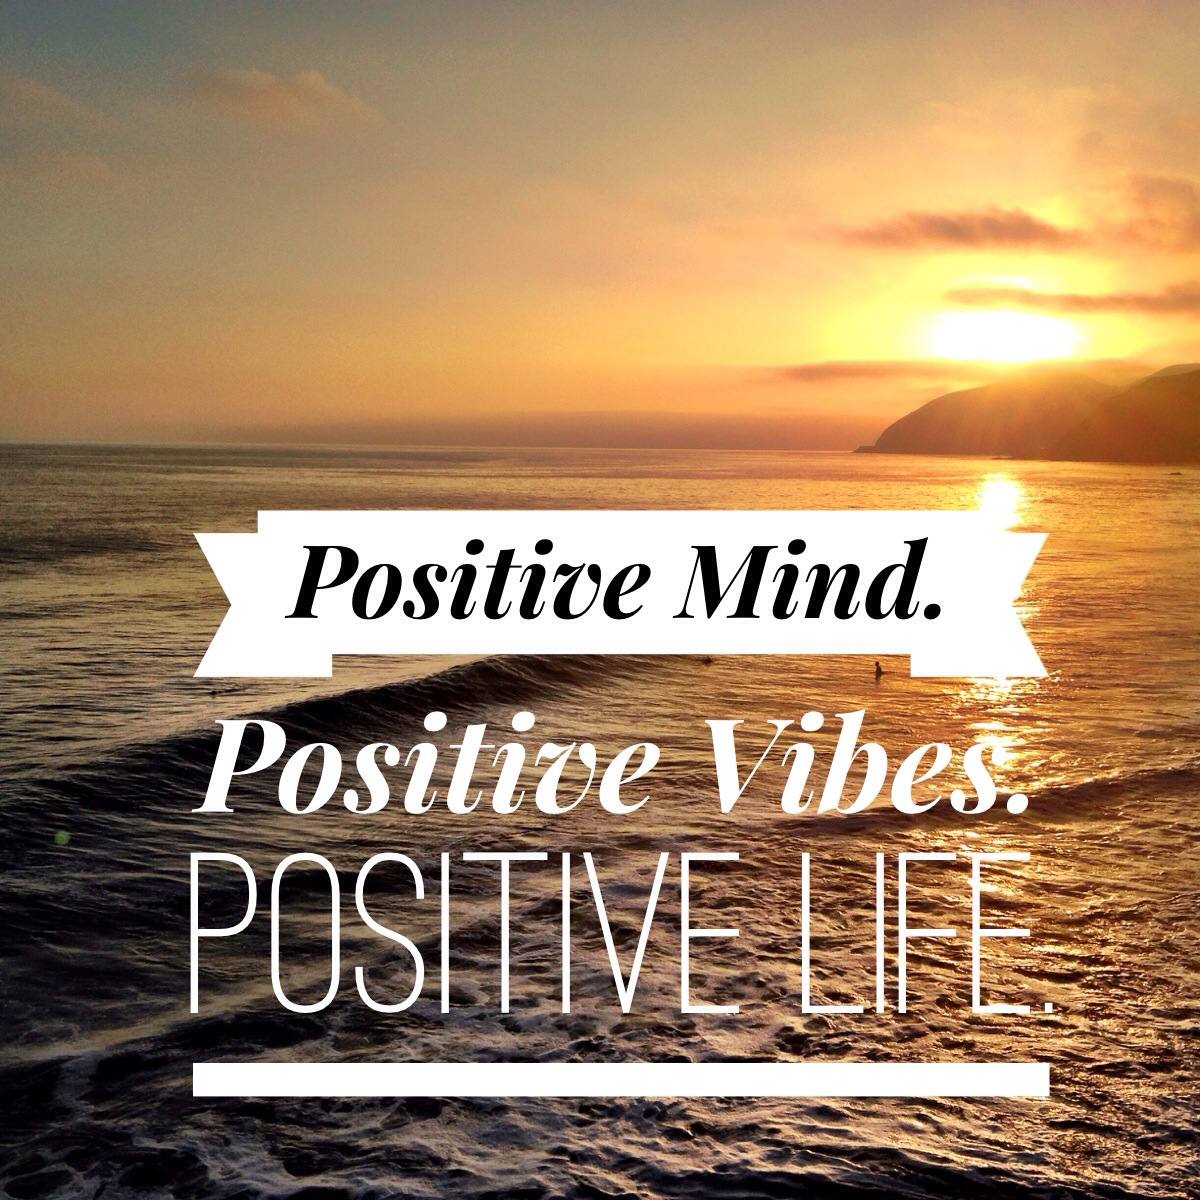 Positive Vibes Quotes. QuotesGram